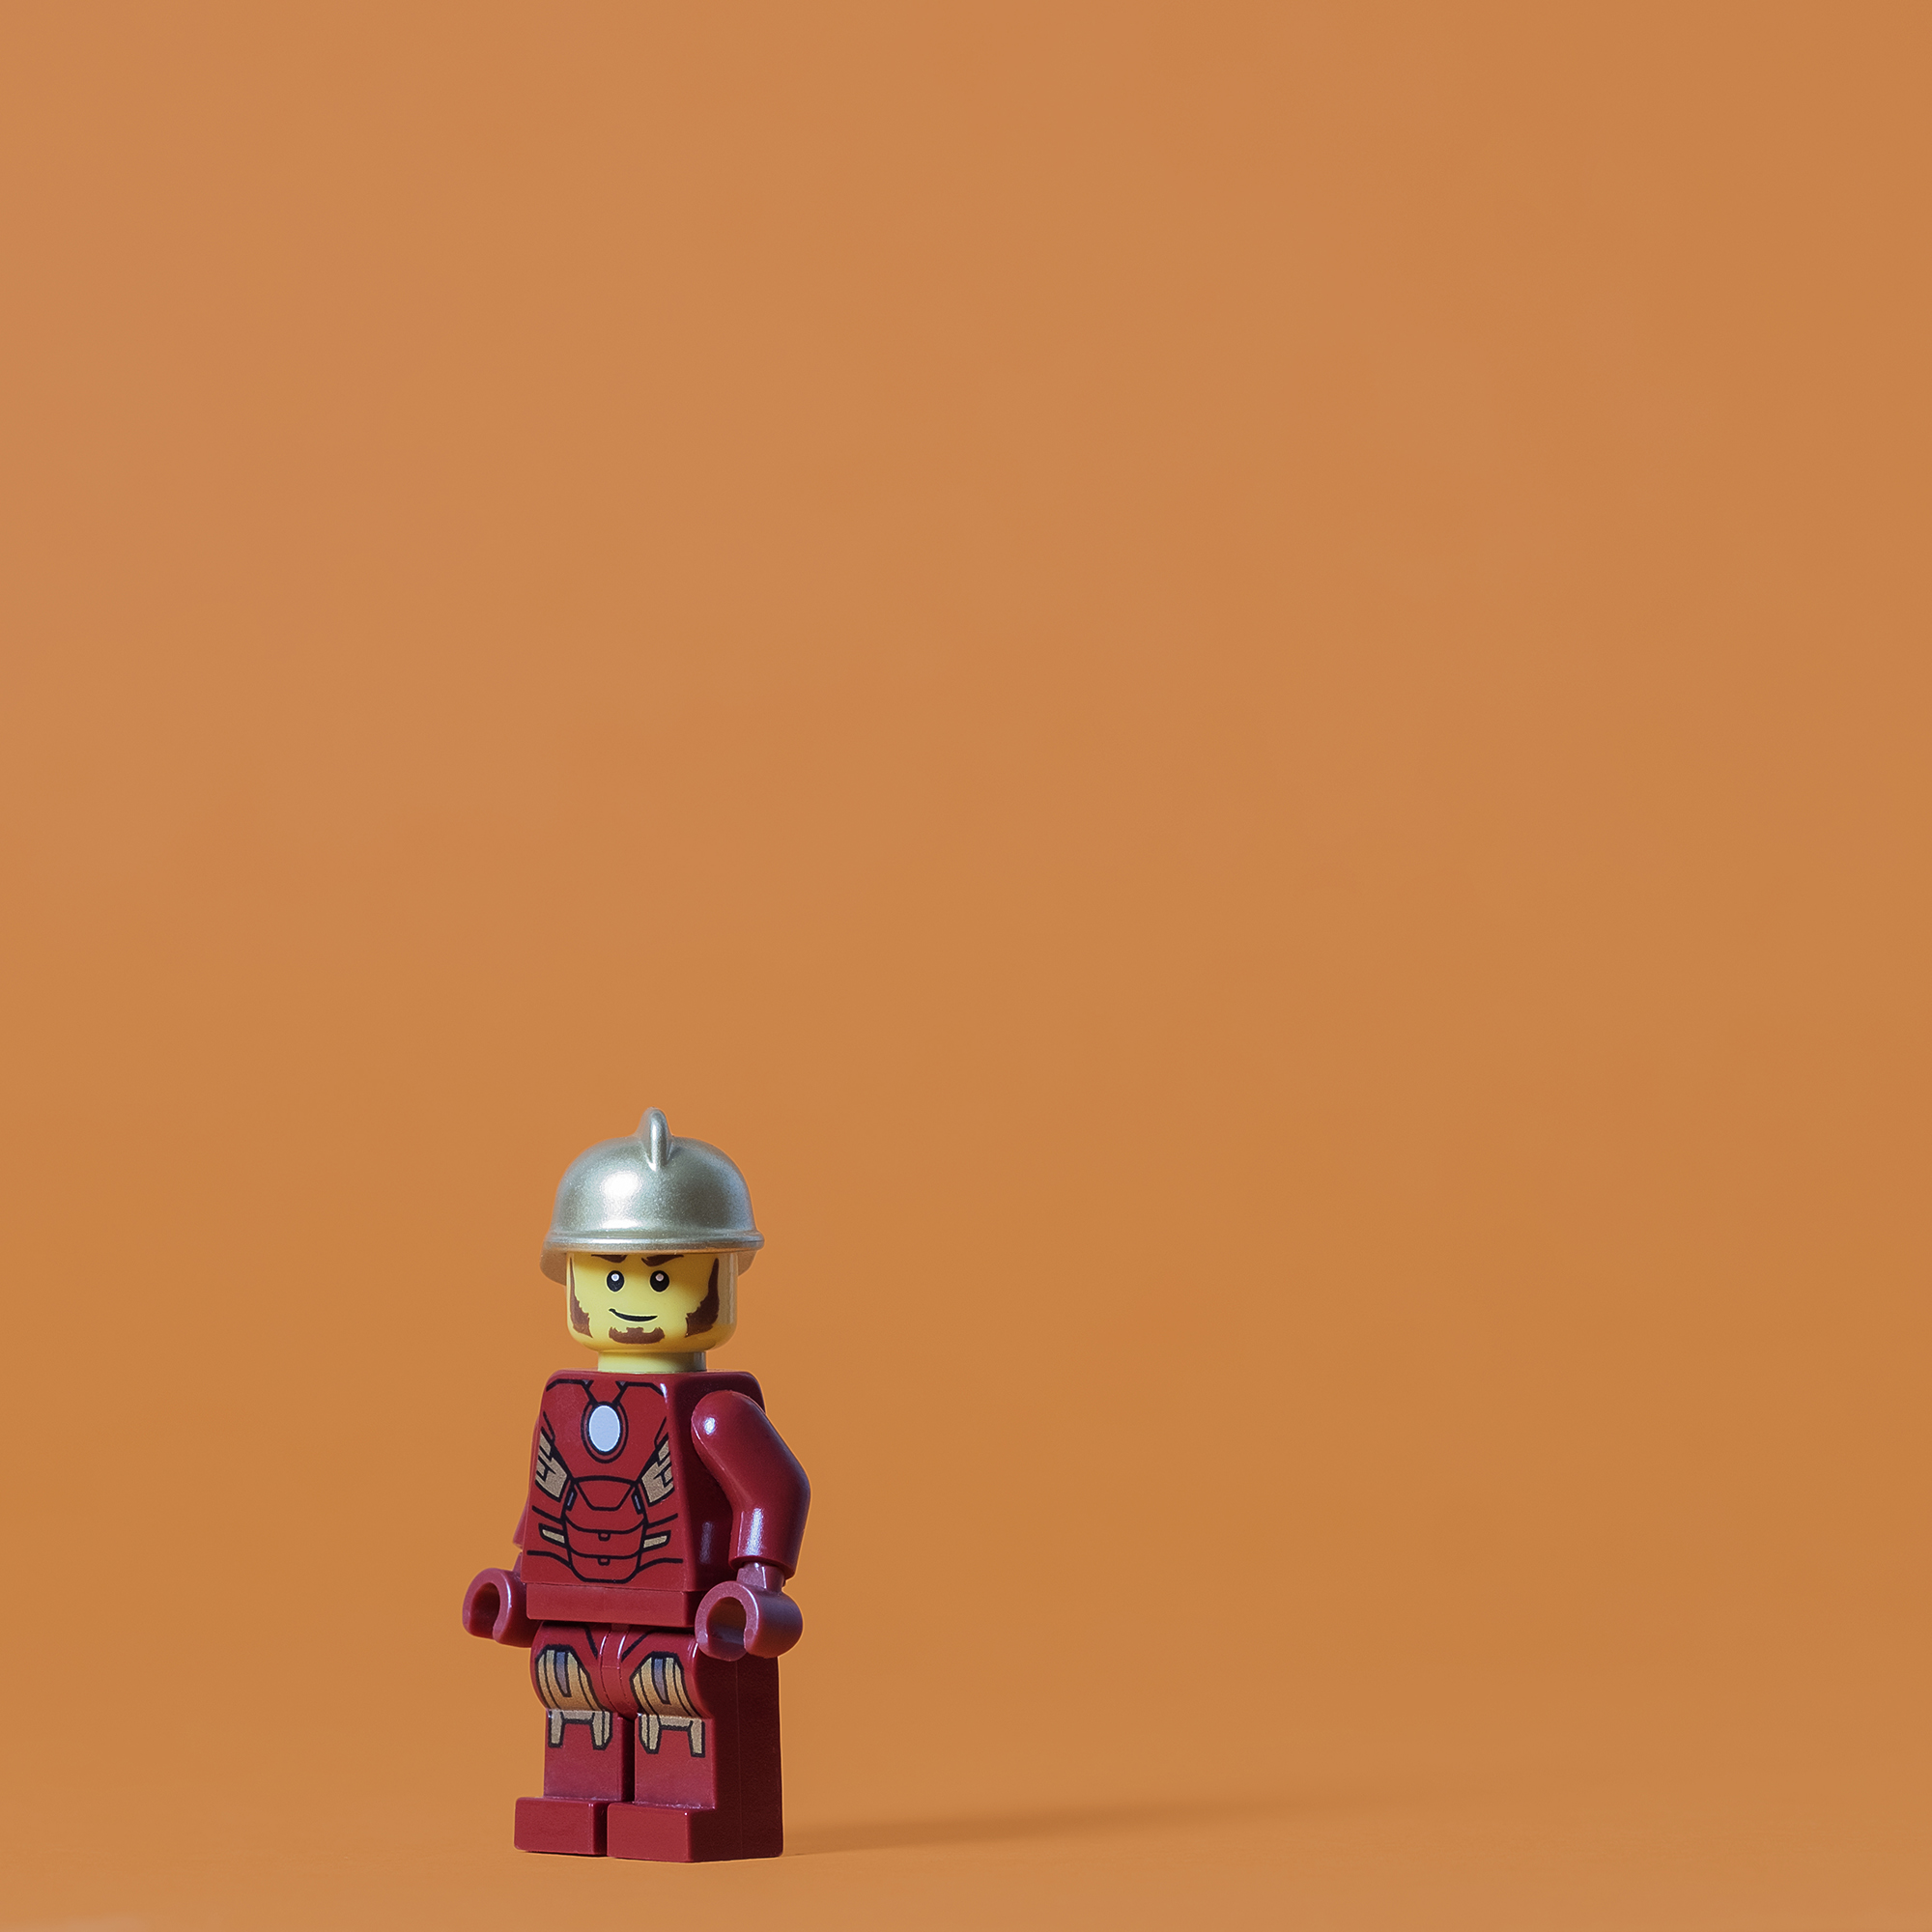 Lego_Photography_Personal_Project_06.jpg